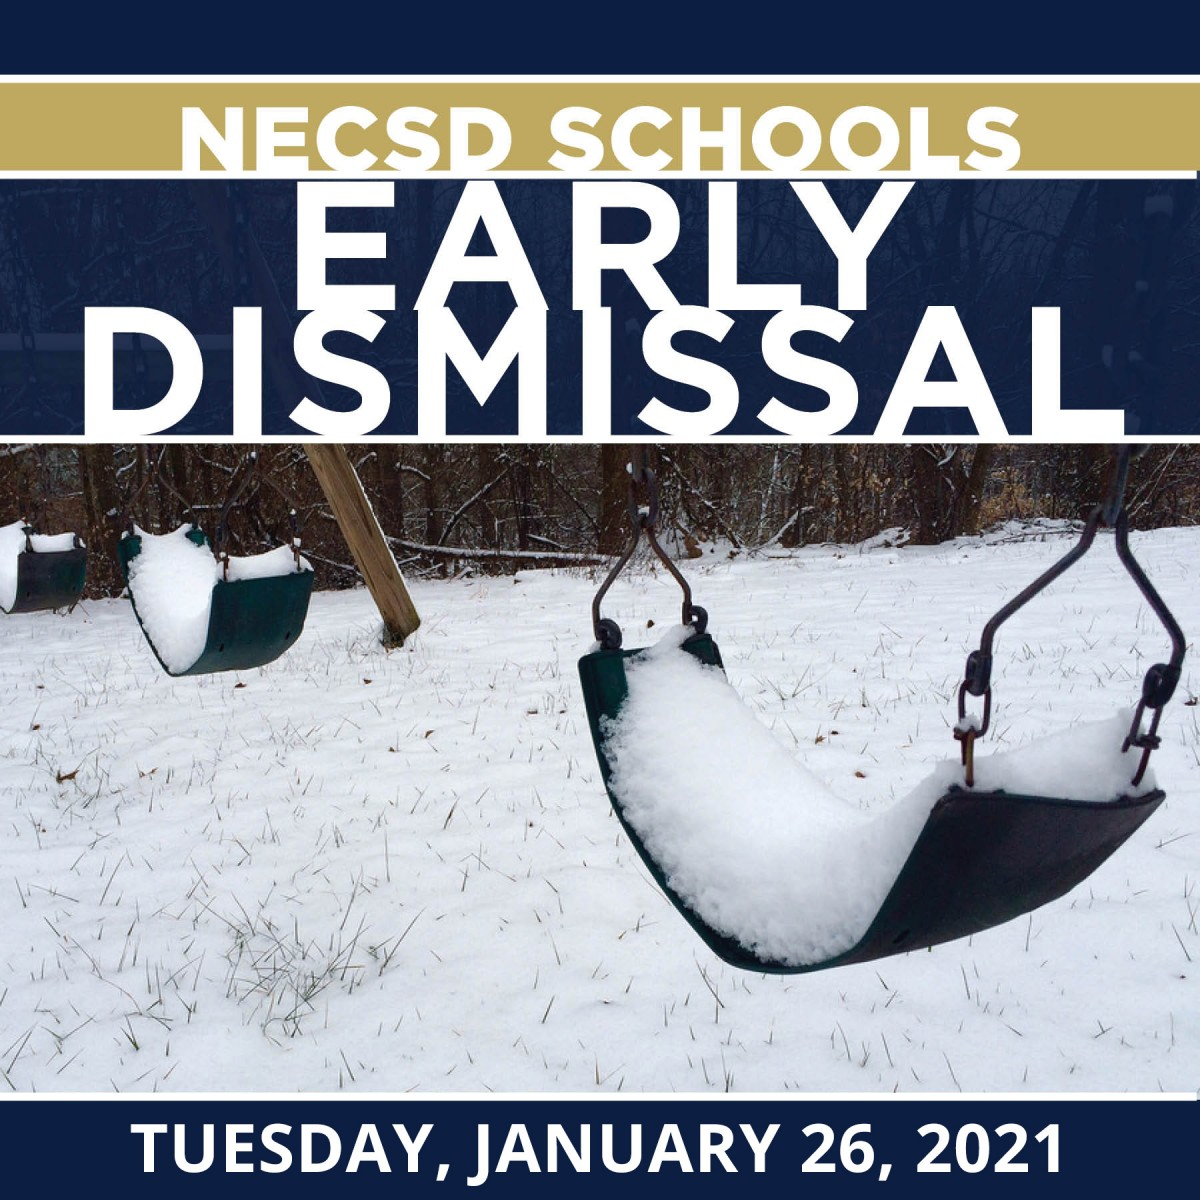 Thumbnail for Early Dismissal - Tuesday, January 26, 2021